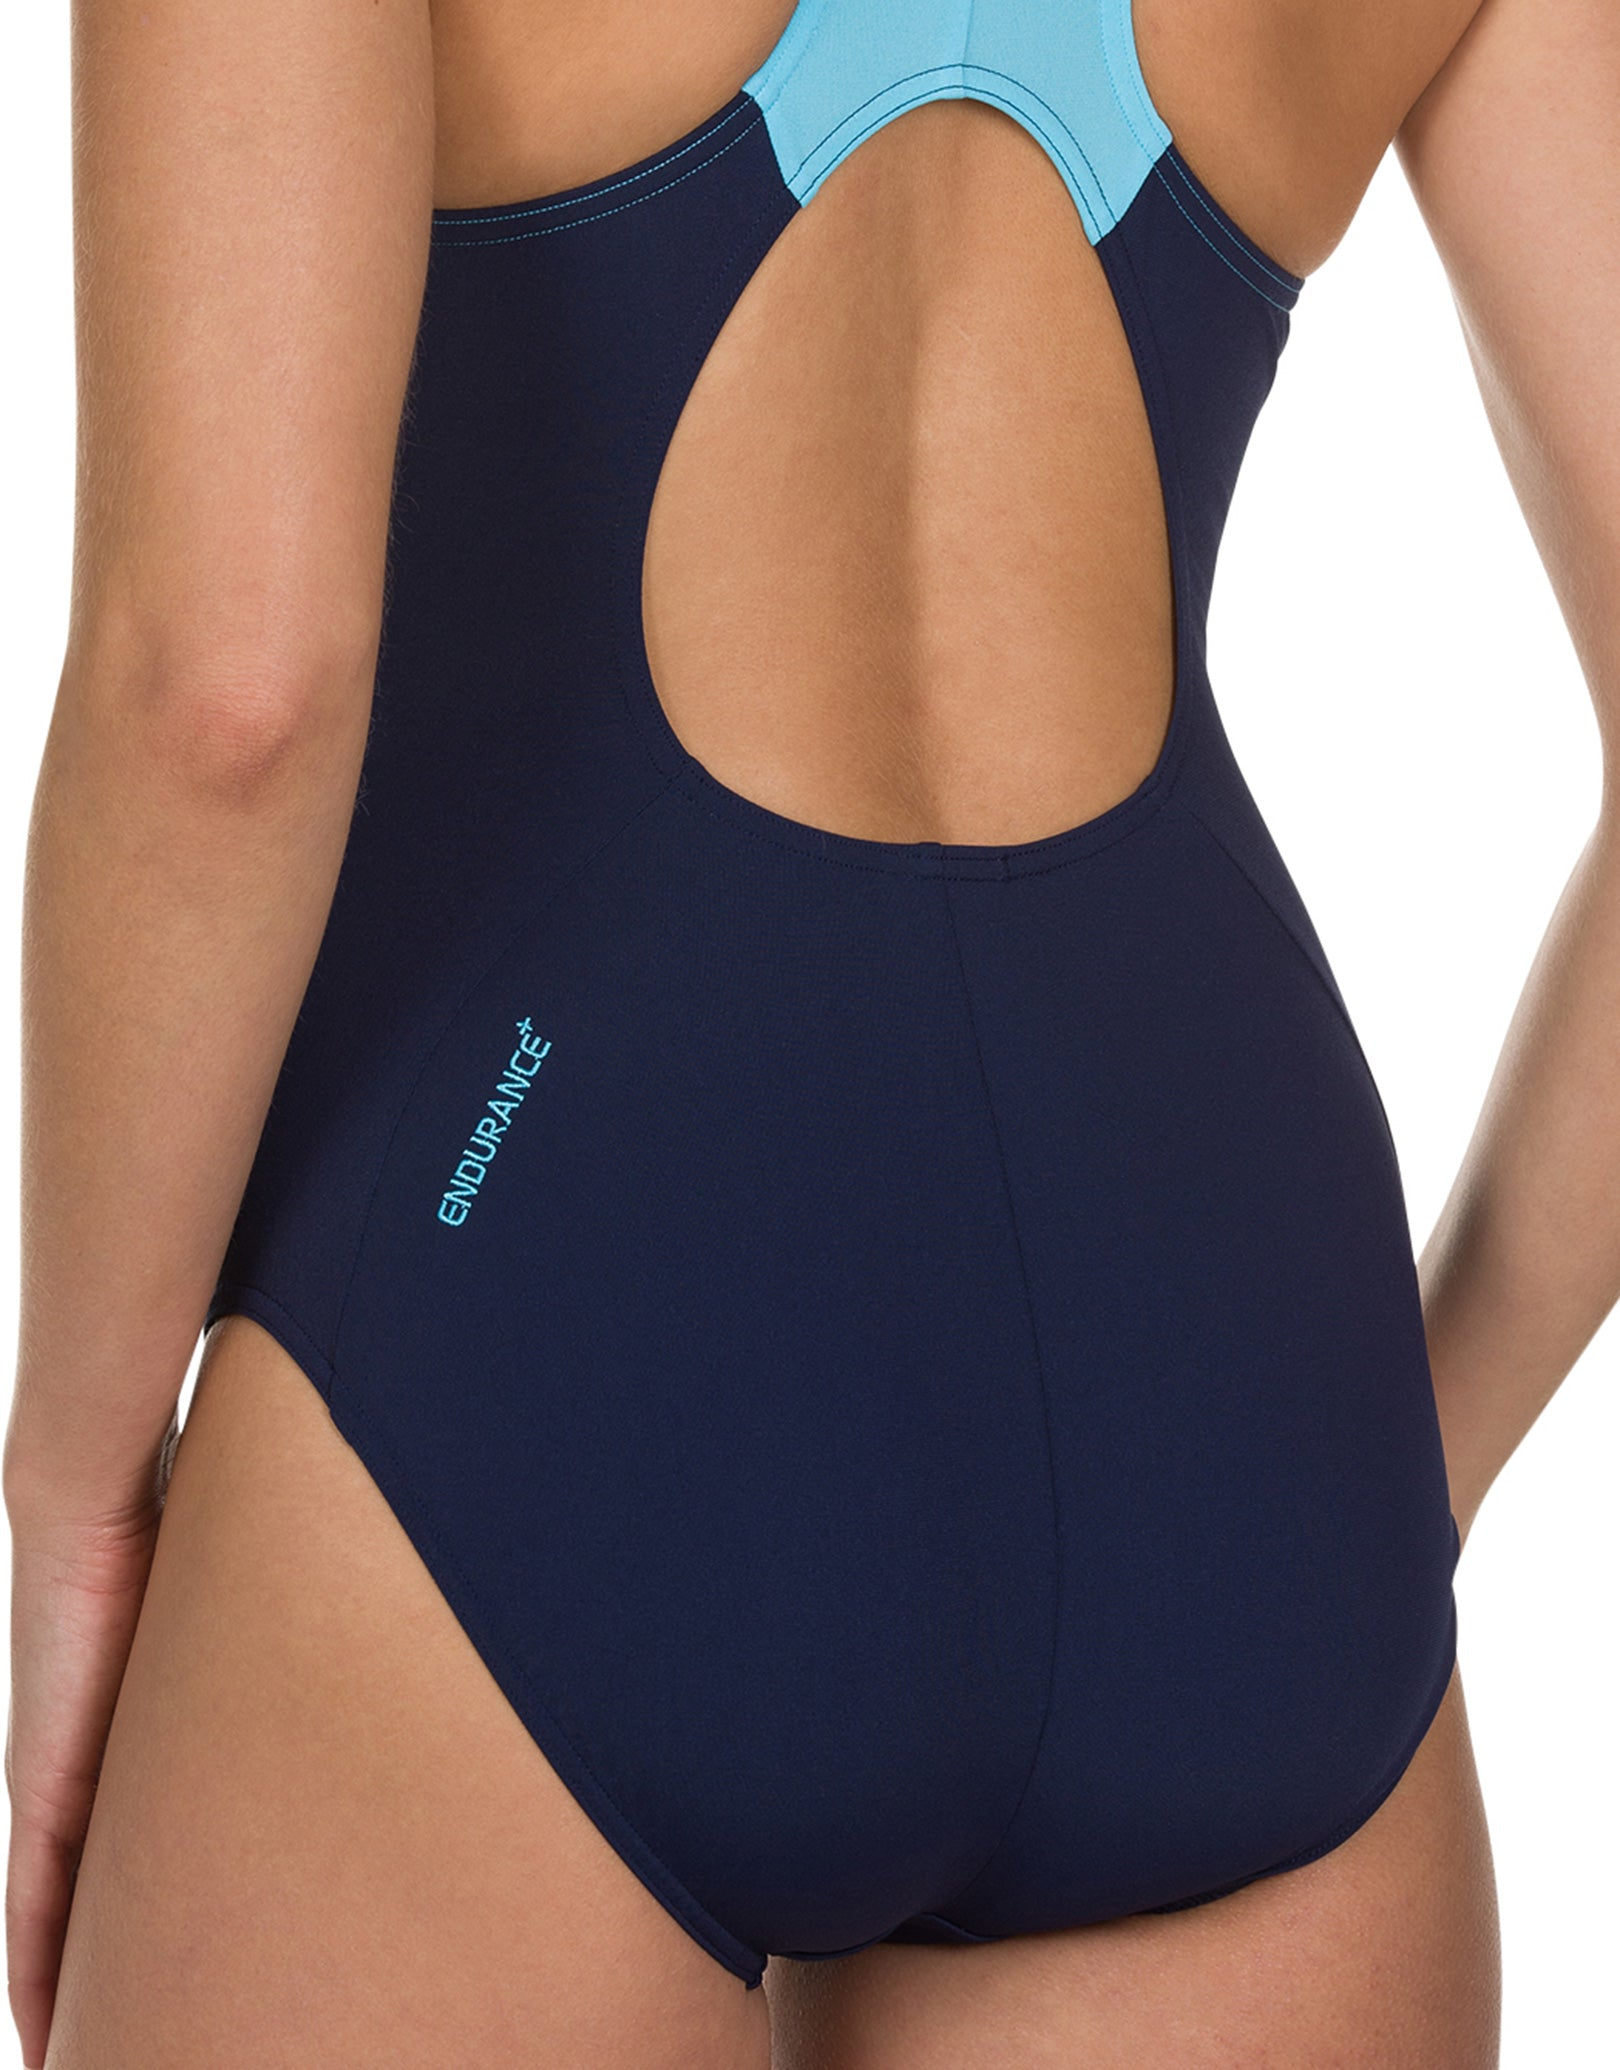 6c103bc3514f6 ... Speedo Endurance Plus Boom Splice Muscleback Swimsuit - Navy and Aqua